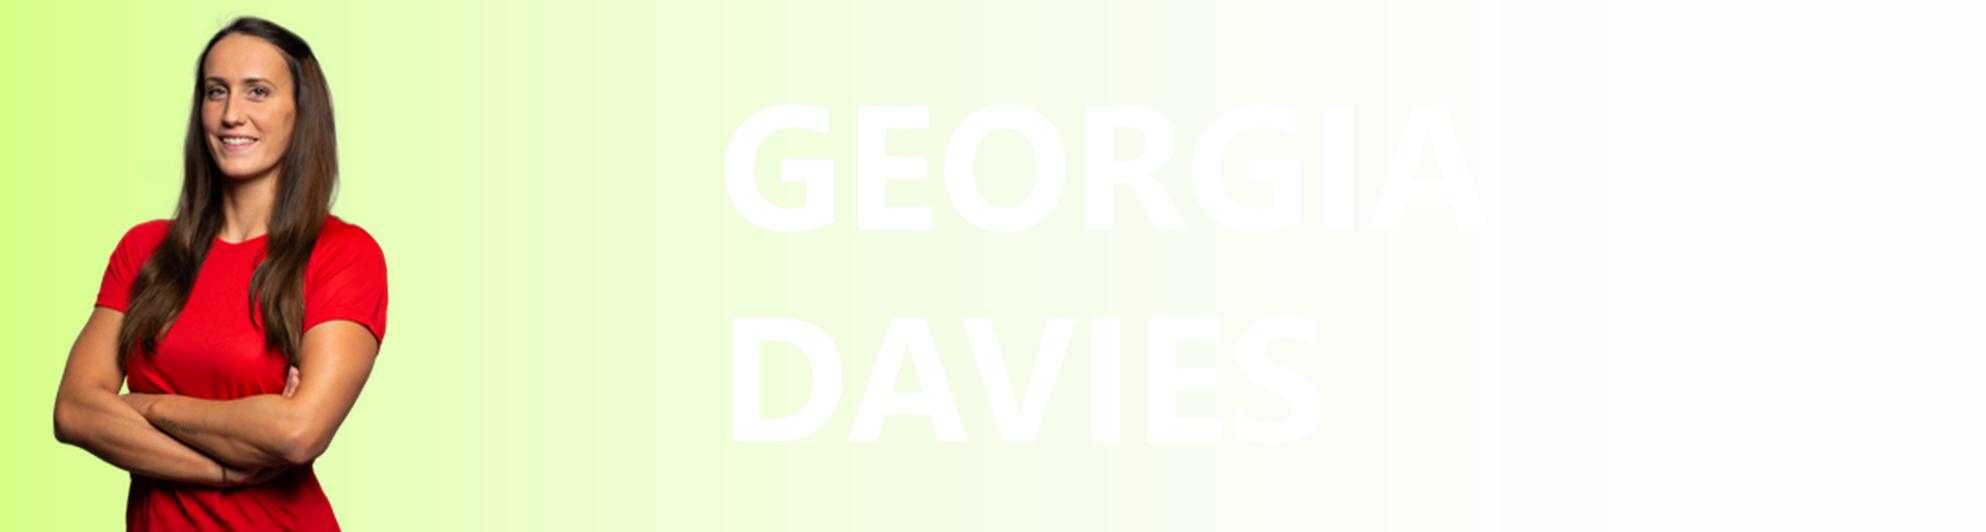 Georgia Davies SwimPath Team Profile Page